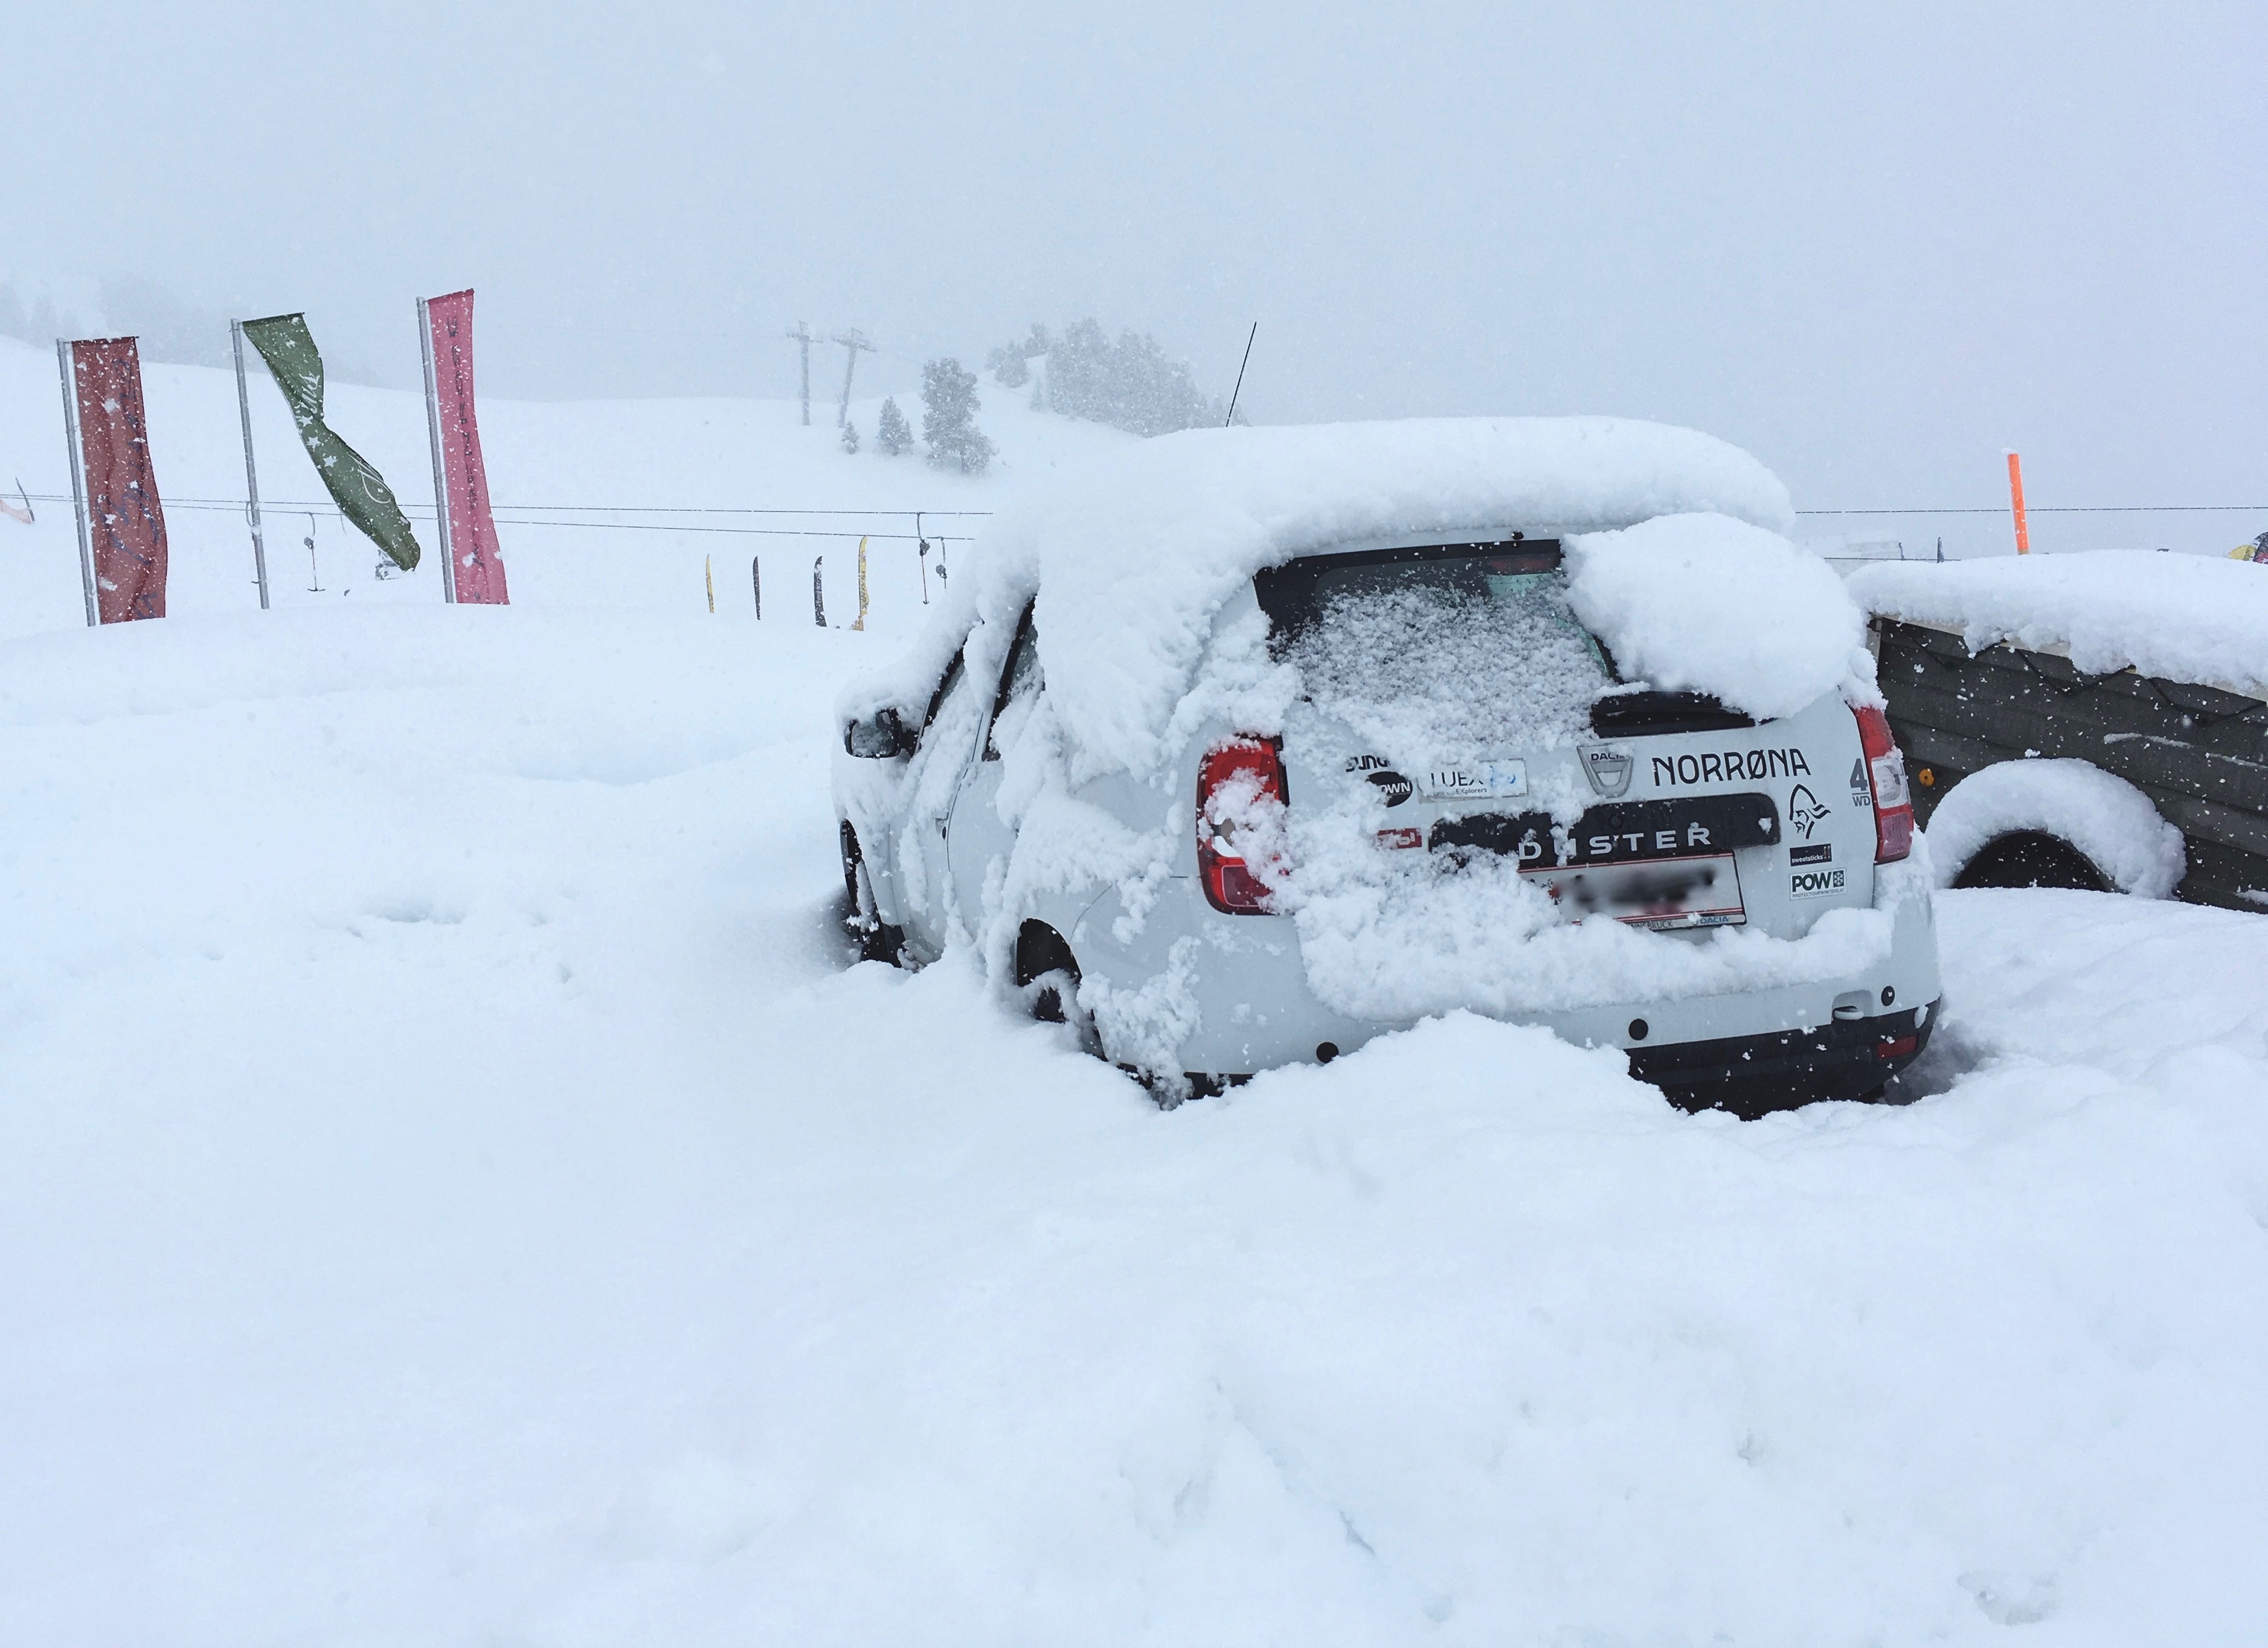 Heavy snow in Kühtai caused chaos on the last day of the ski test this year, but the Fall-Line #AdventureMobile soldiered on!